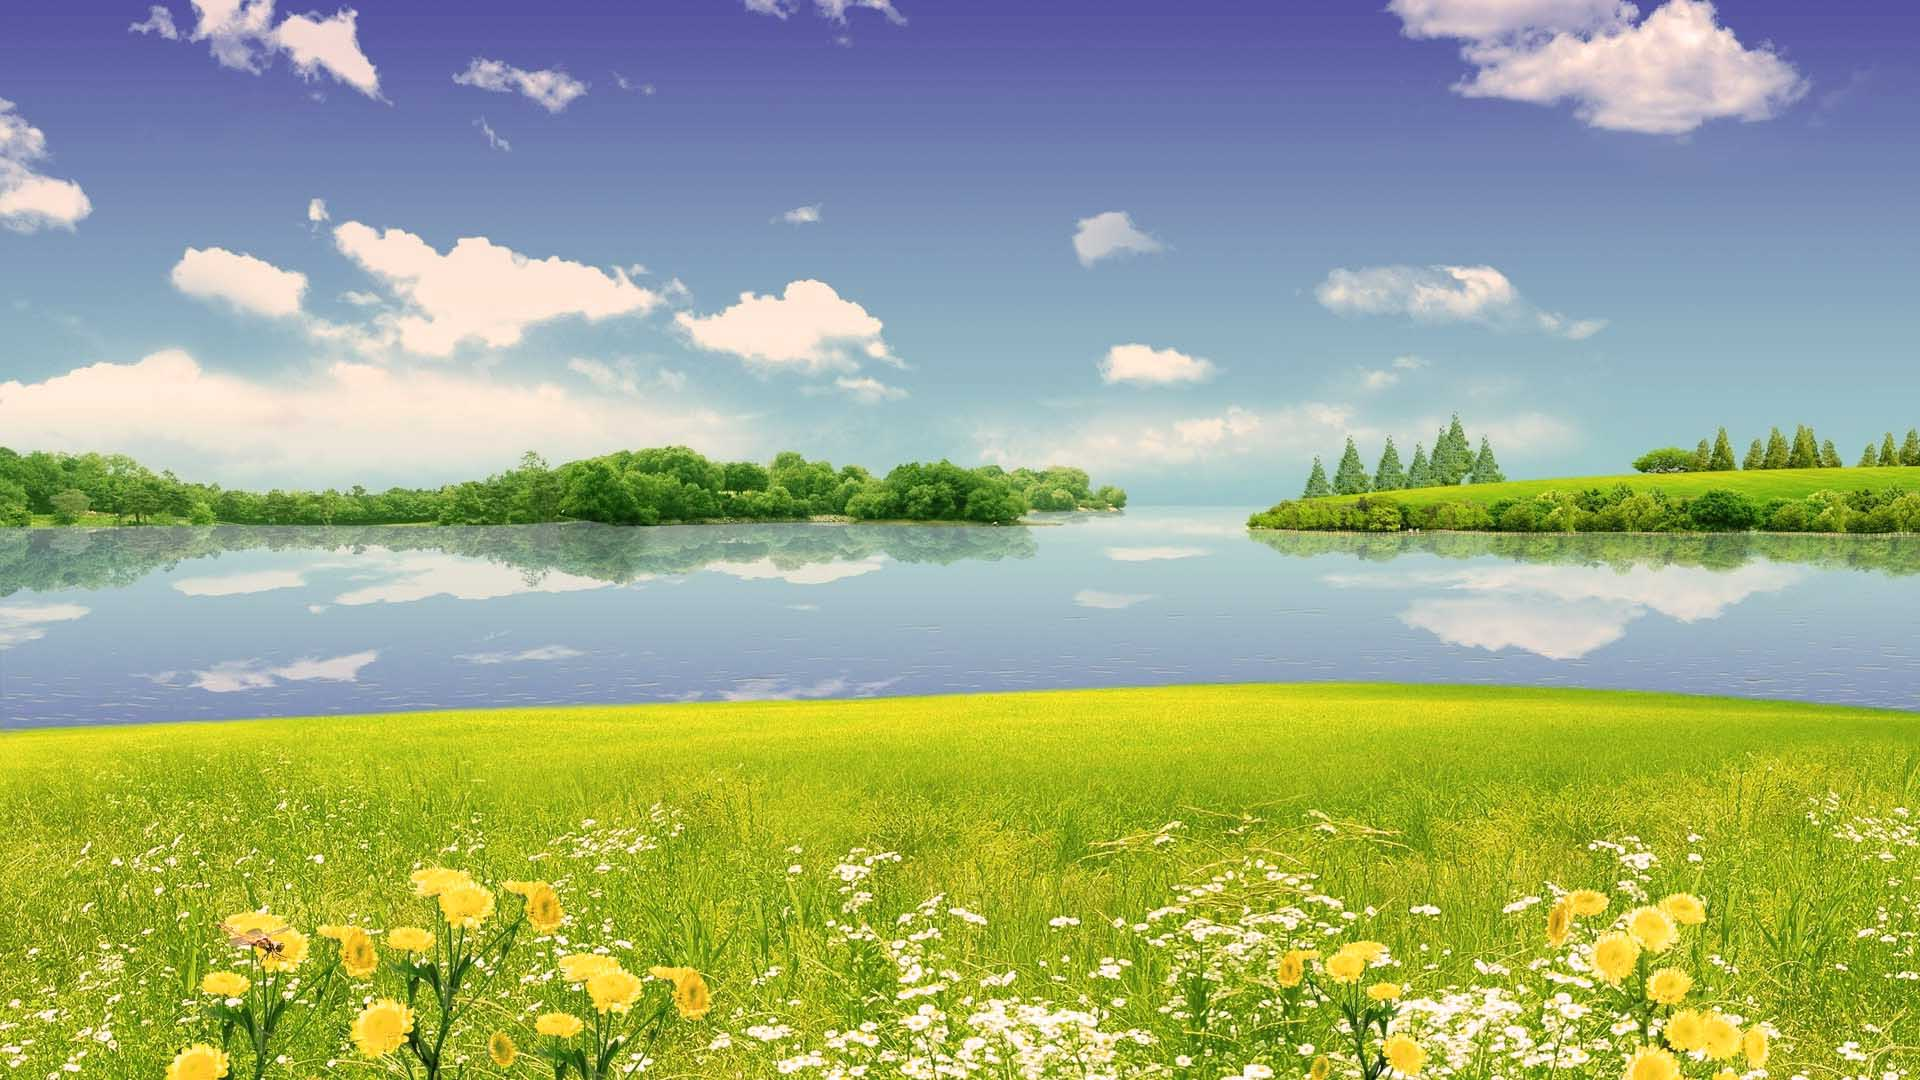 summer scenes wallpaper wallpapersafari